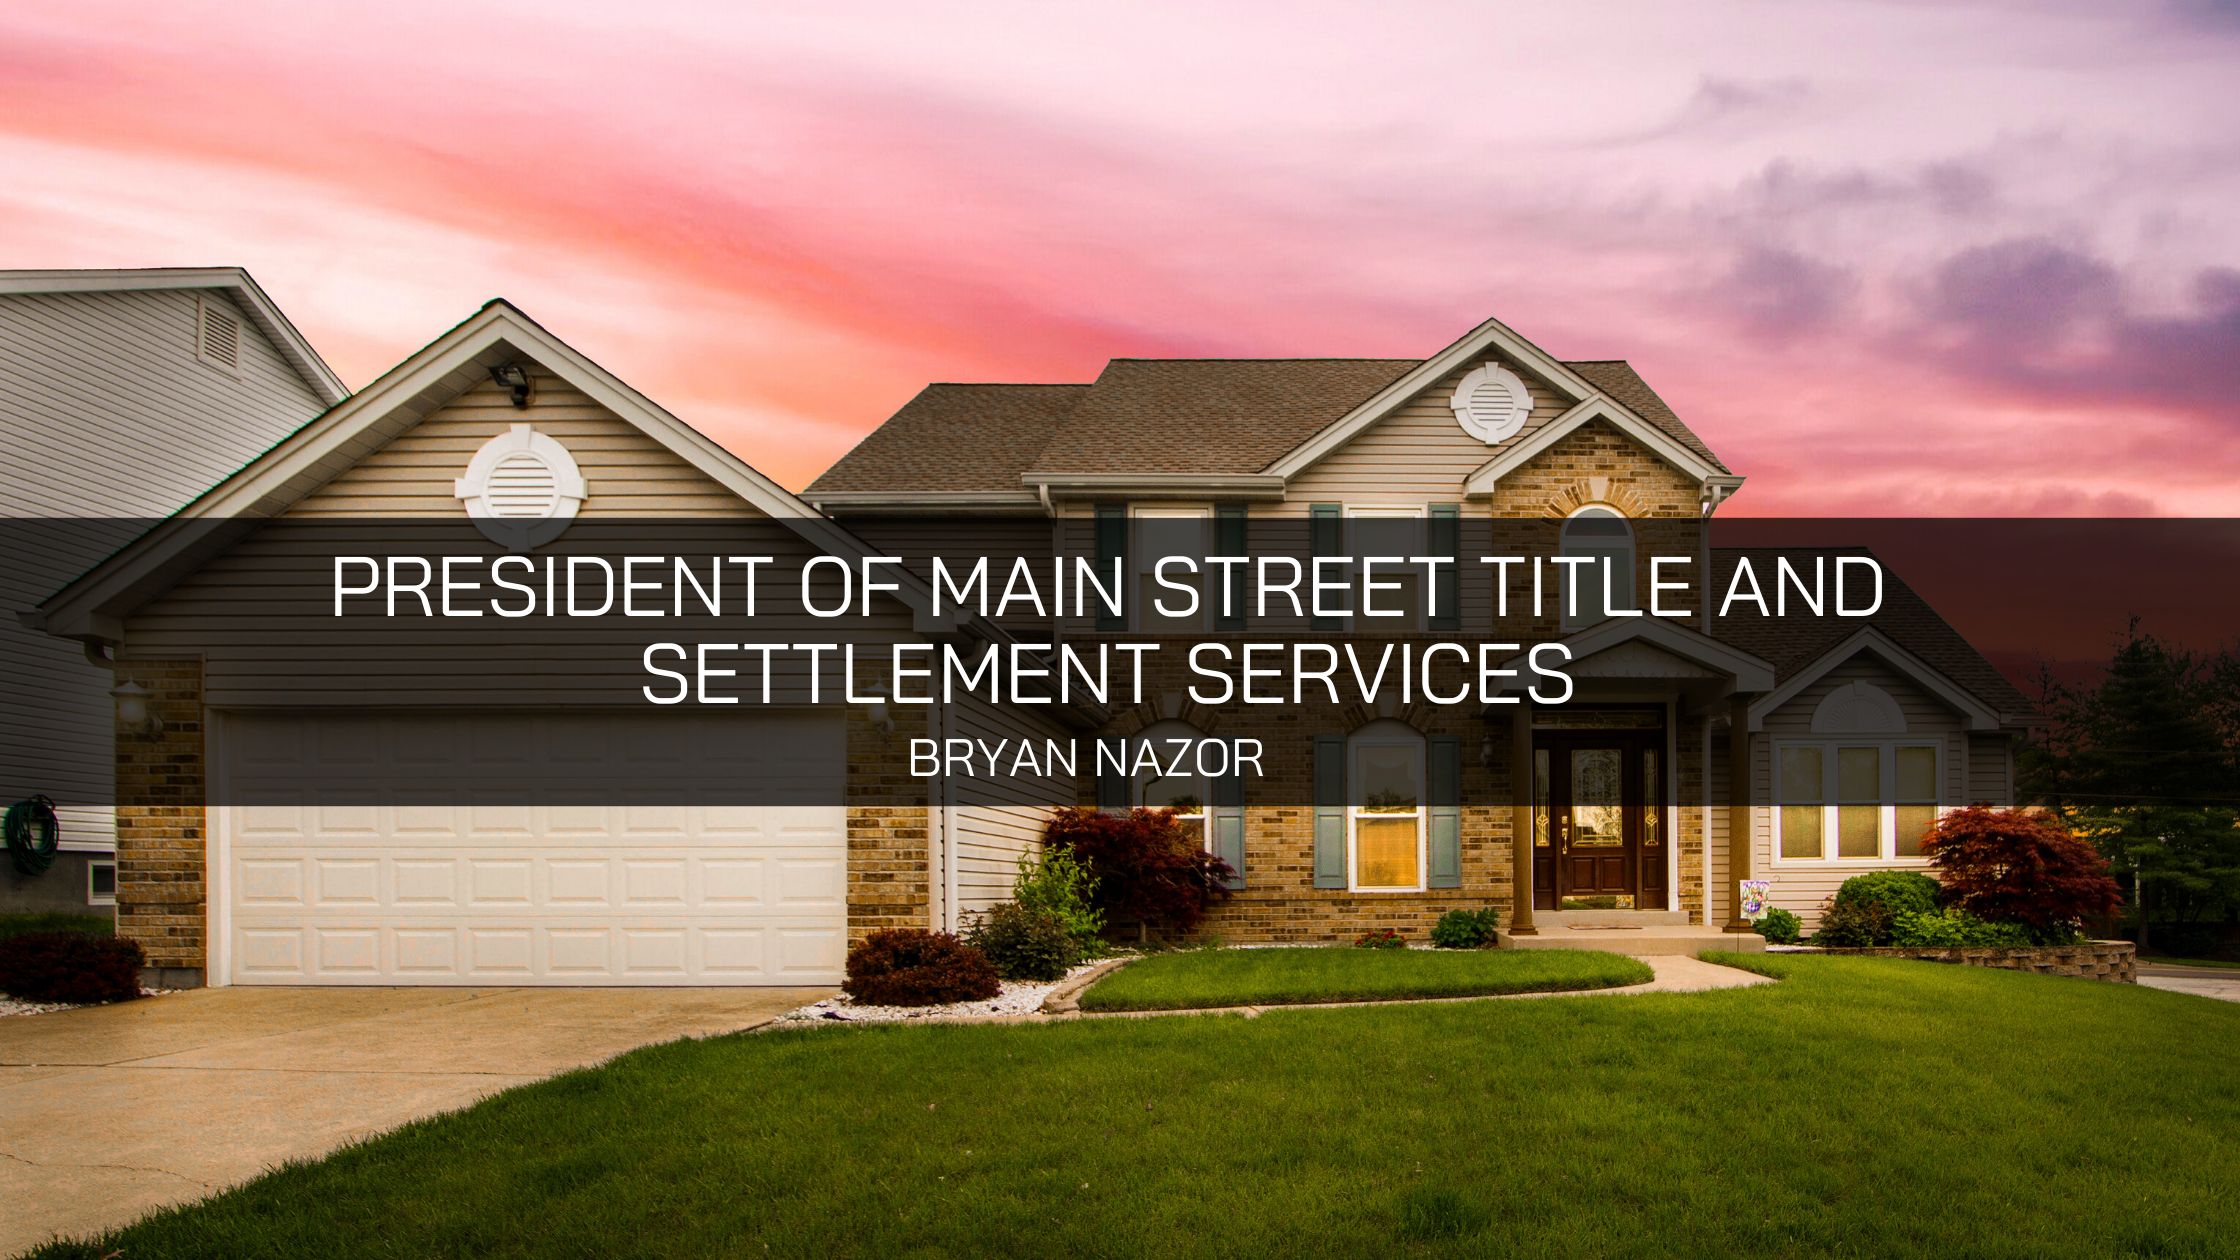 Bryan Nazor – President of Main Street Title and Settlement Services